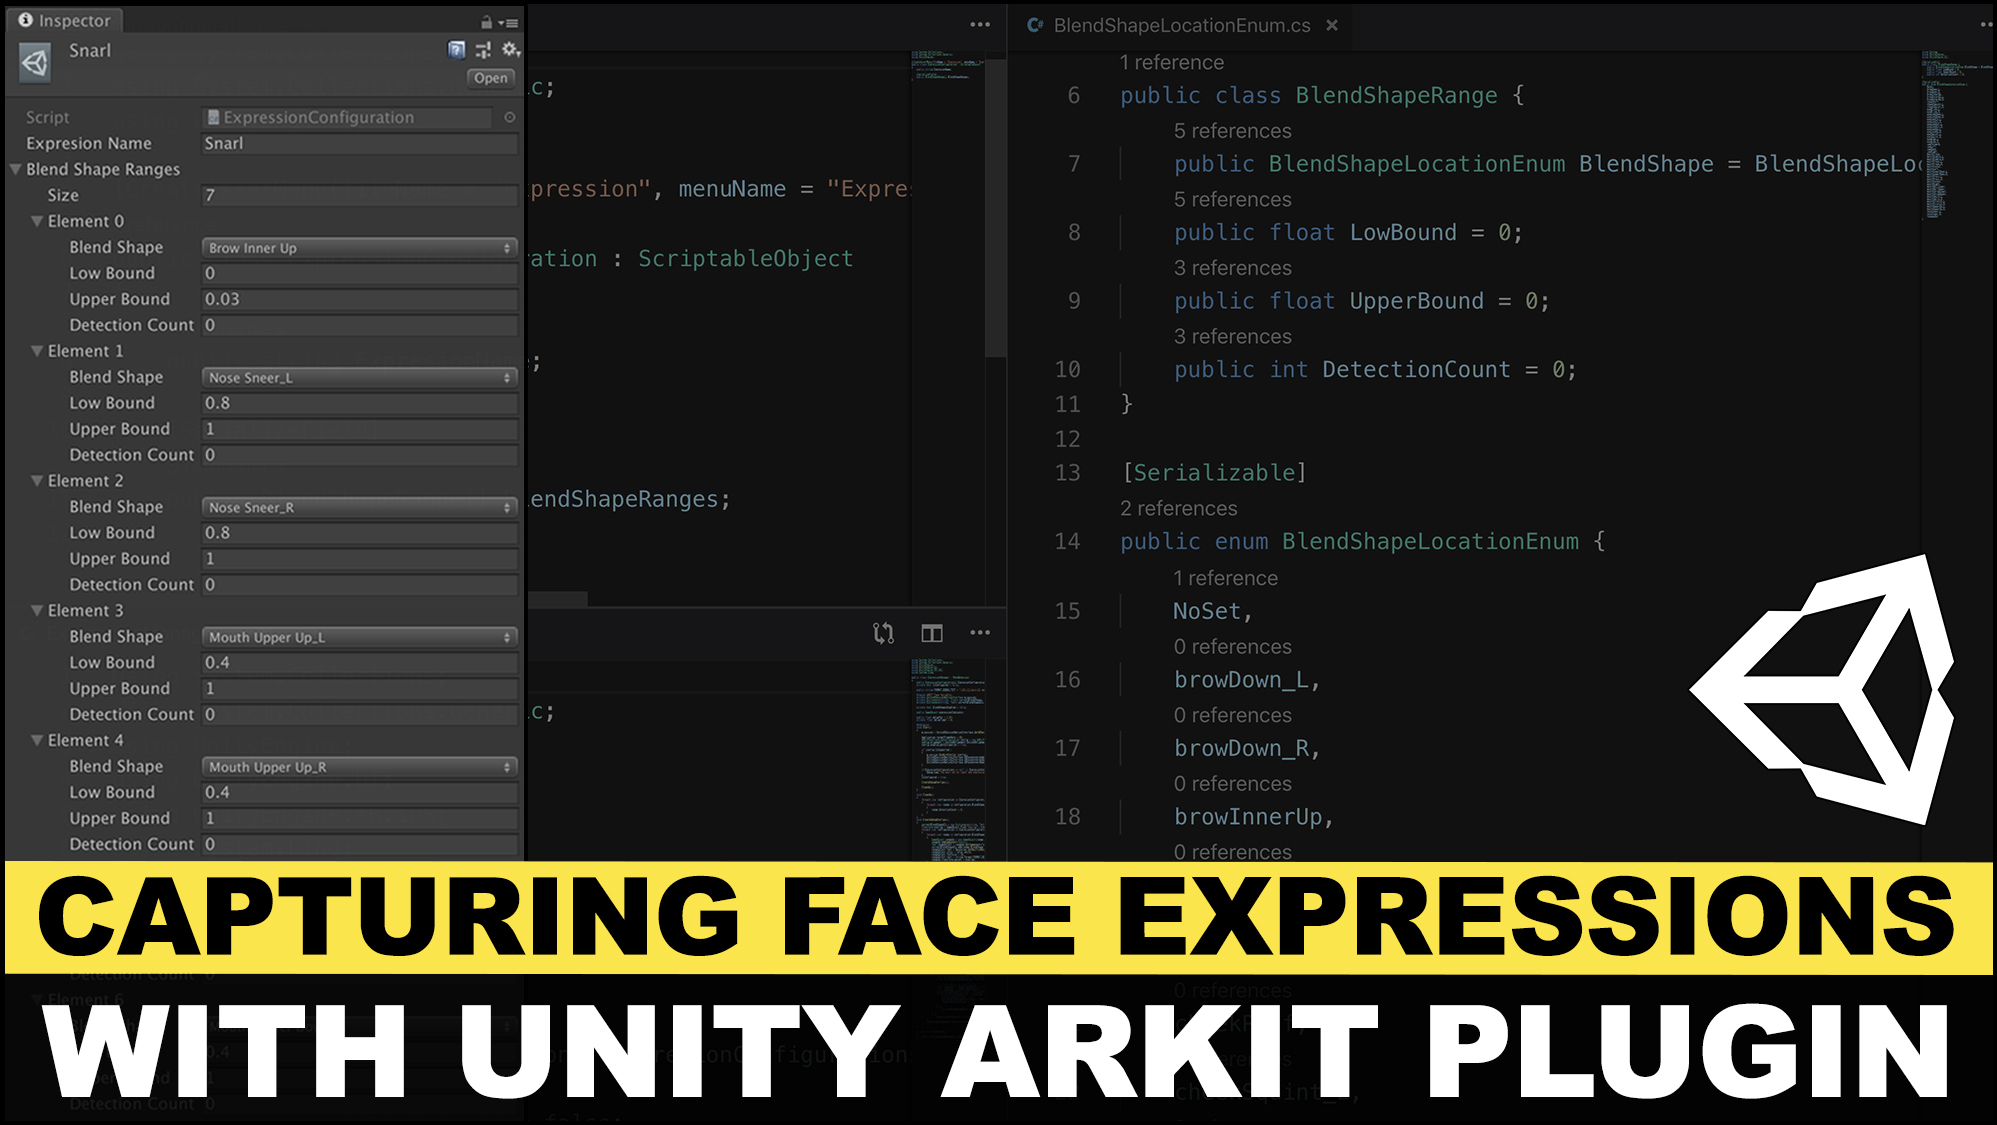 Unity3d ARKit Face Tracking with fully configurable face expressions with scriptable objects